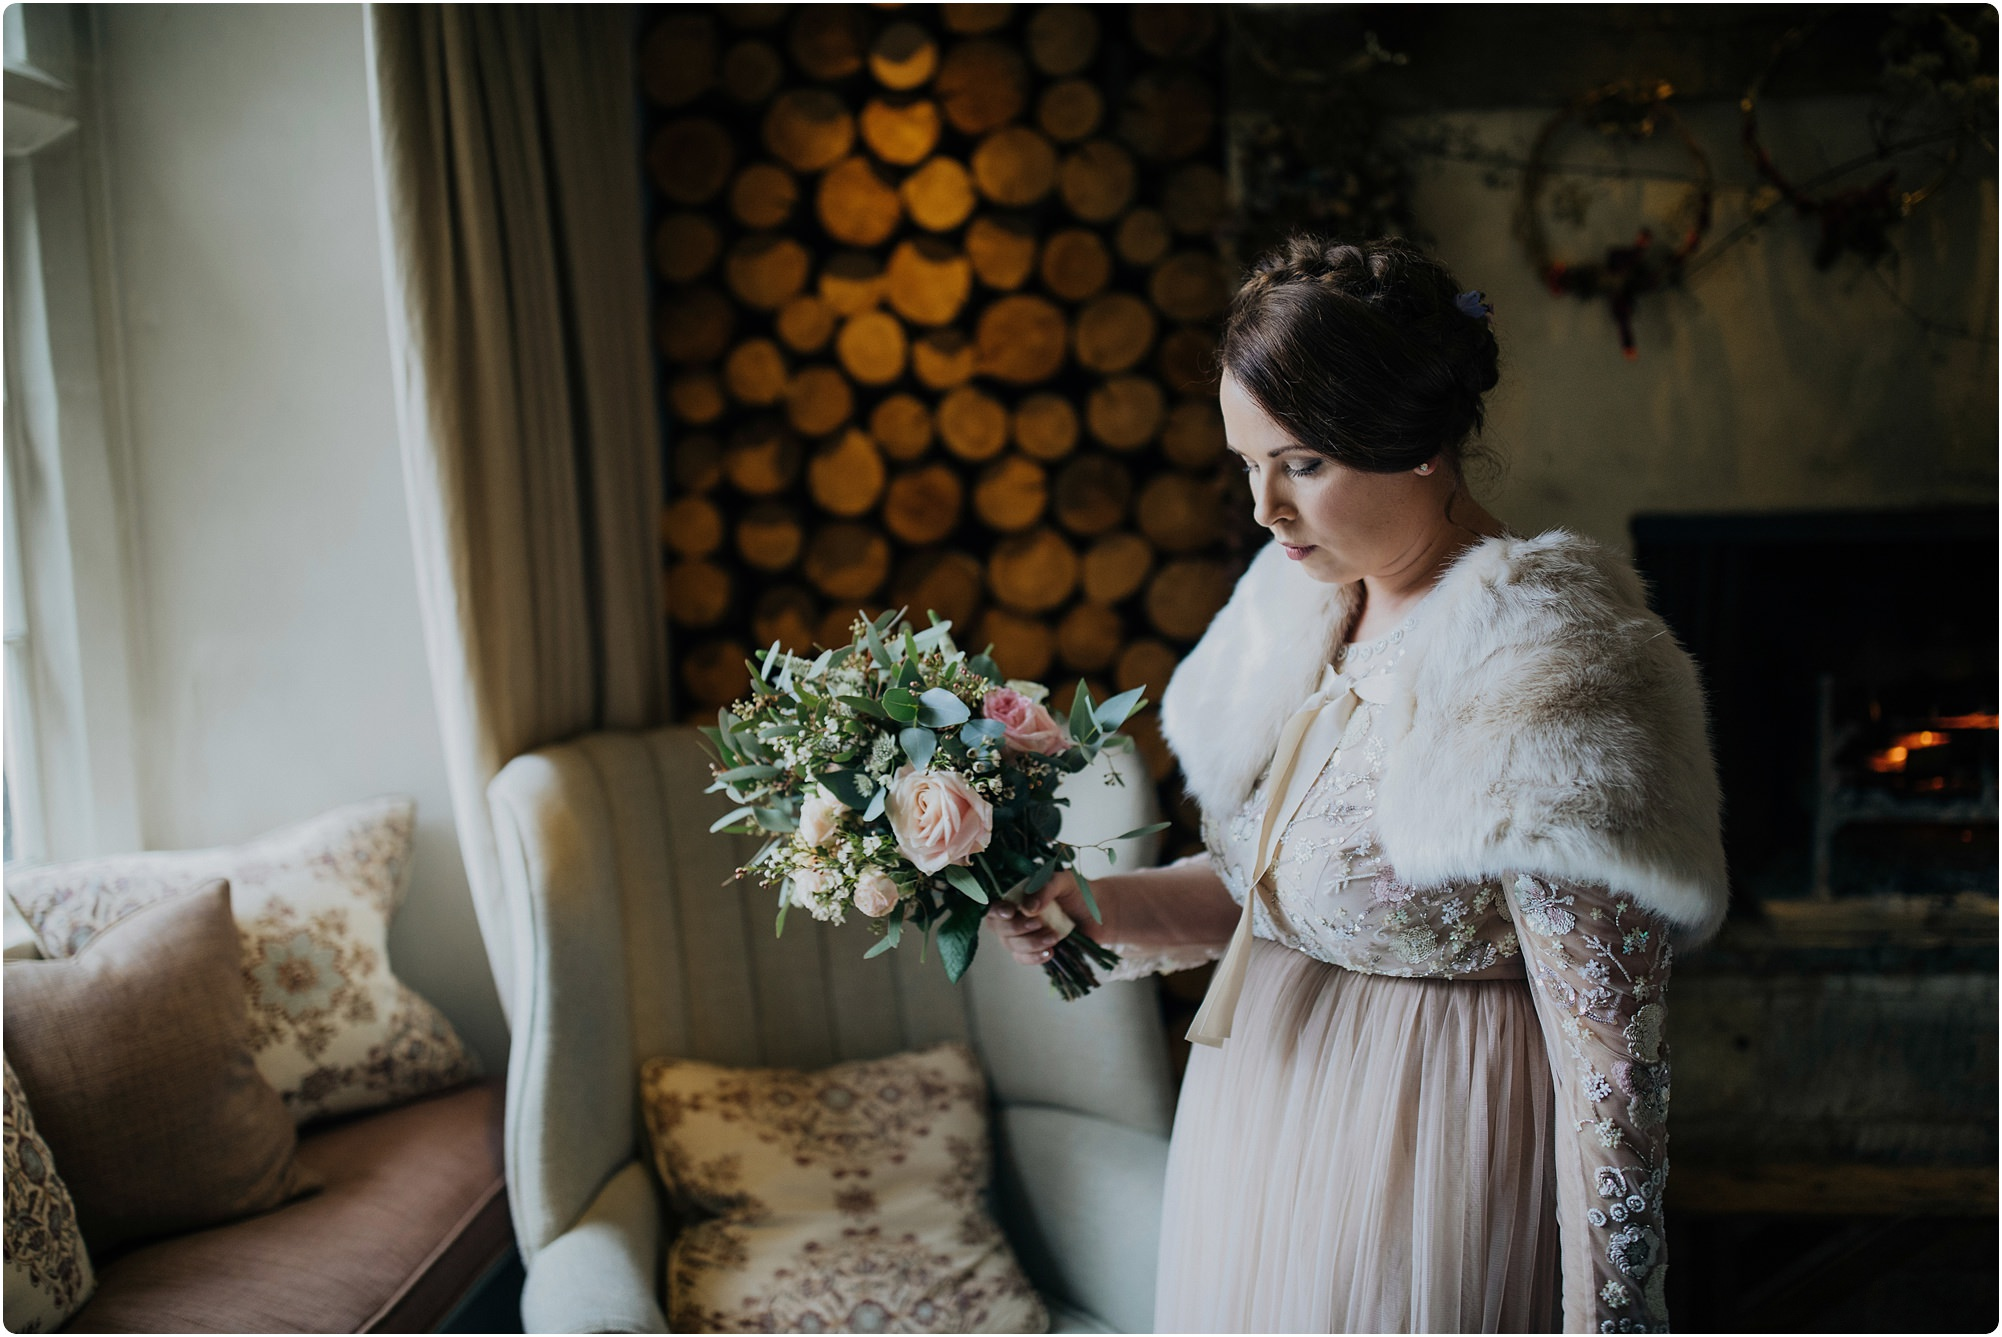 Bridesmaid wearing a long sleeved embroidered needle and thread dress at a Barnsley House wedding